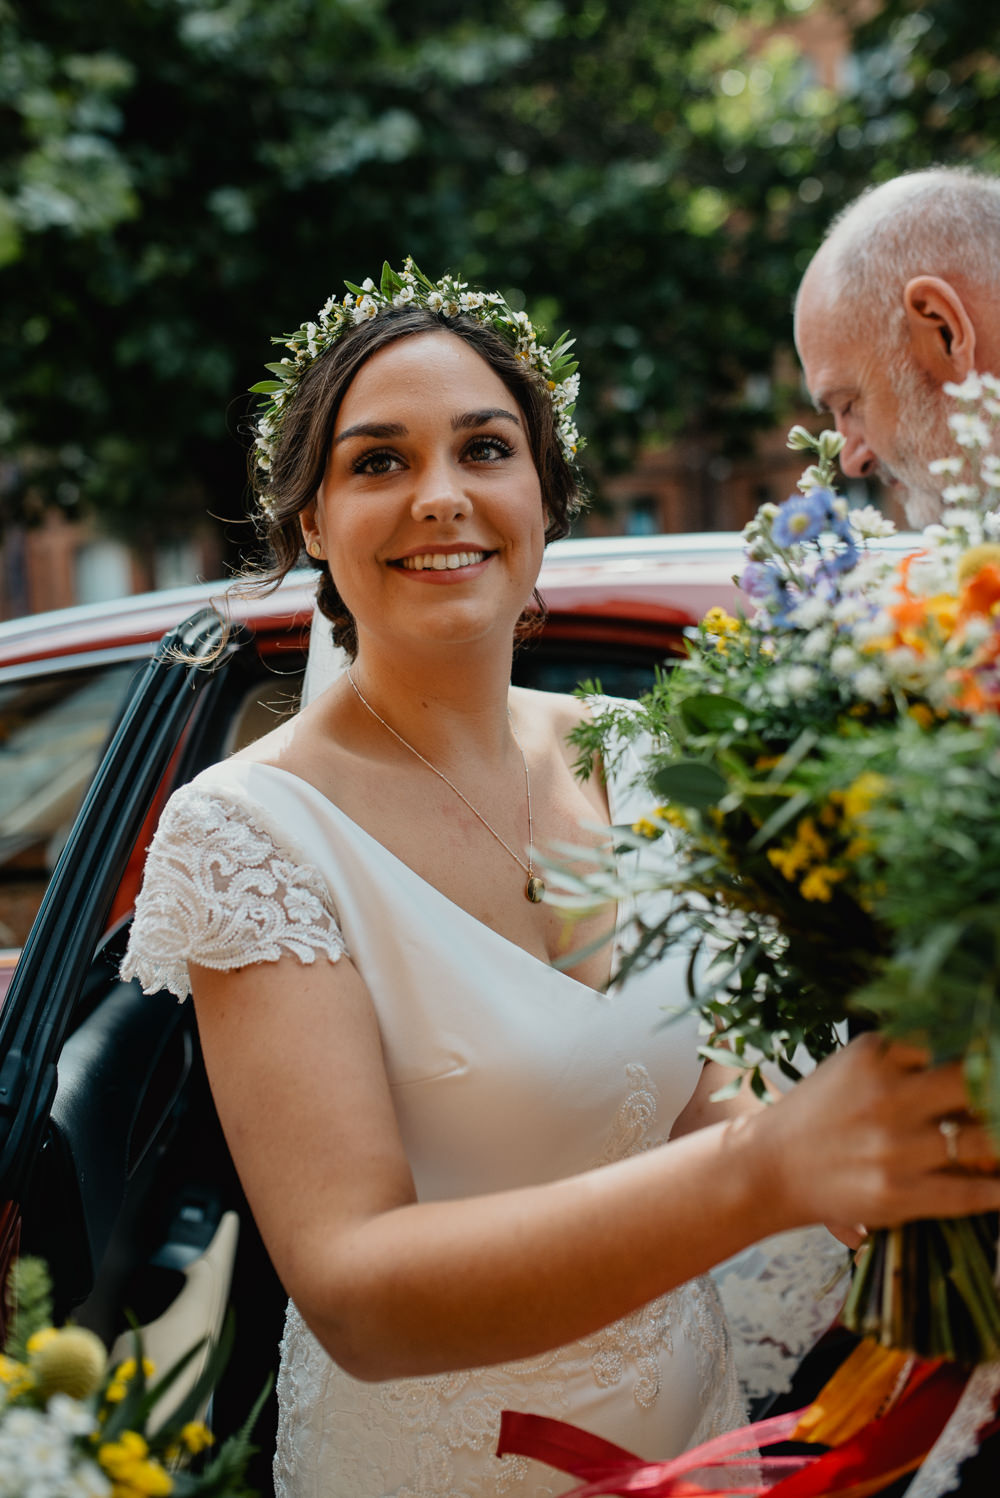 Bride Bridal Make Up Flower Crown Colourful Stretch Tent Wedding Peter Mackey Photography